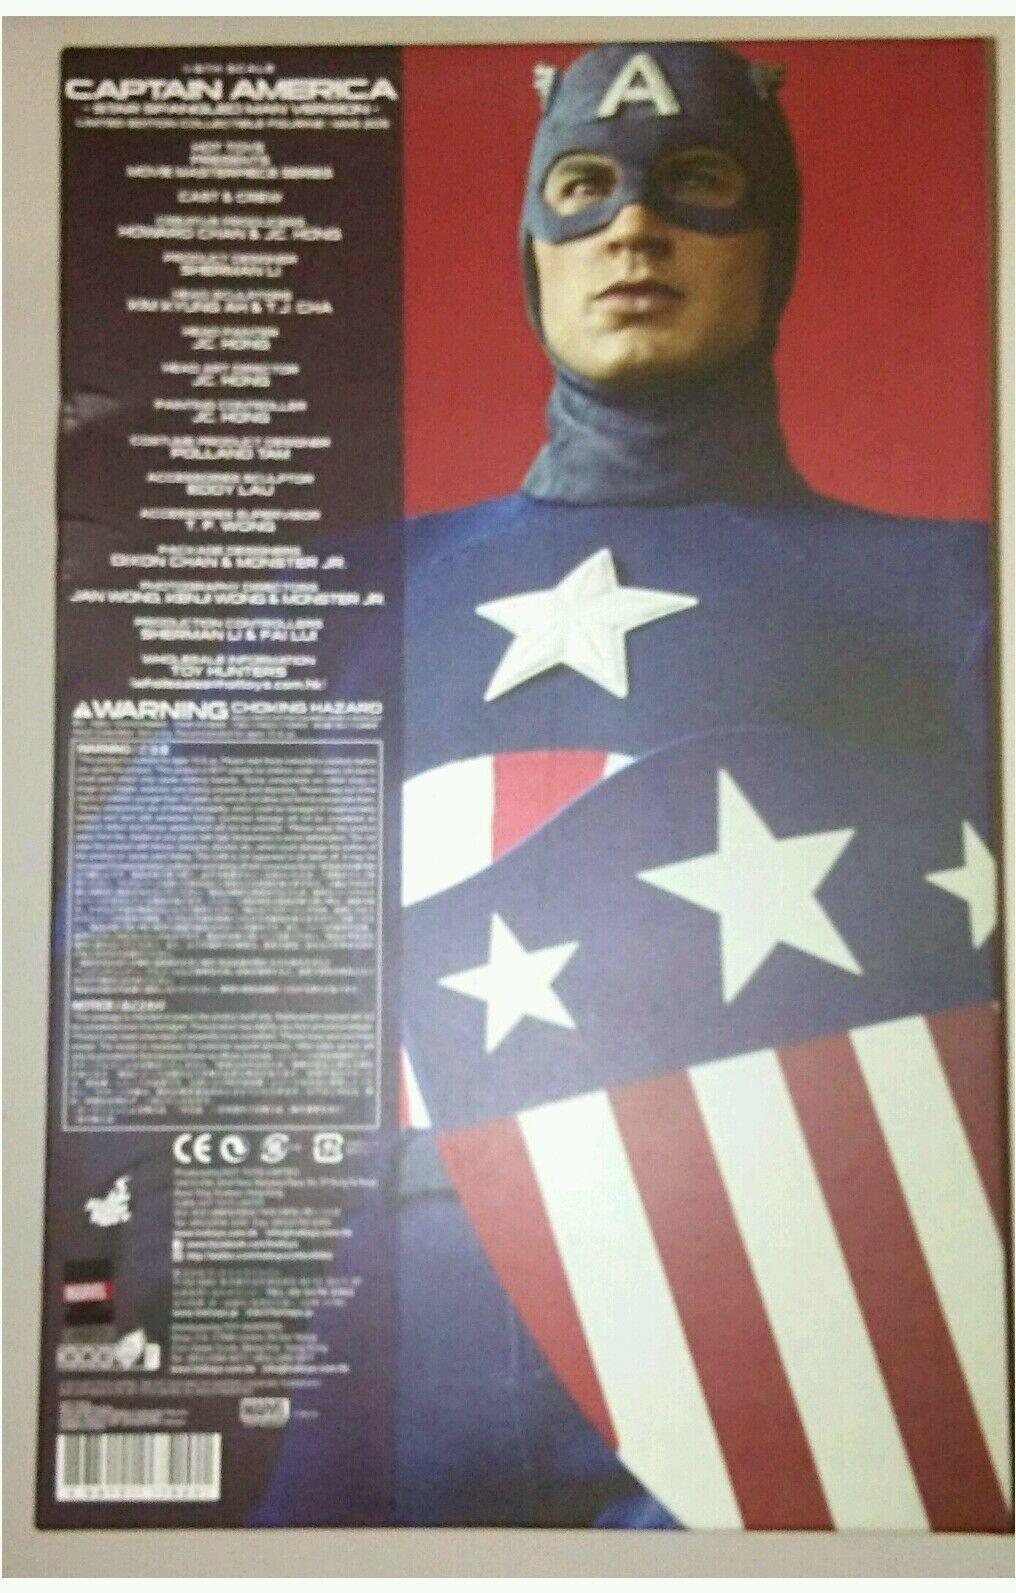 1 6 Hot Toys Captain America MMS205 MMS205 MMS205 Empty Box With Plastic Inserts 563389